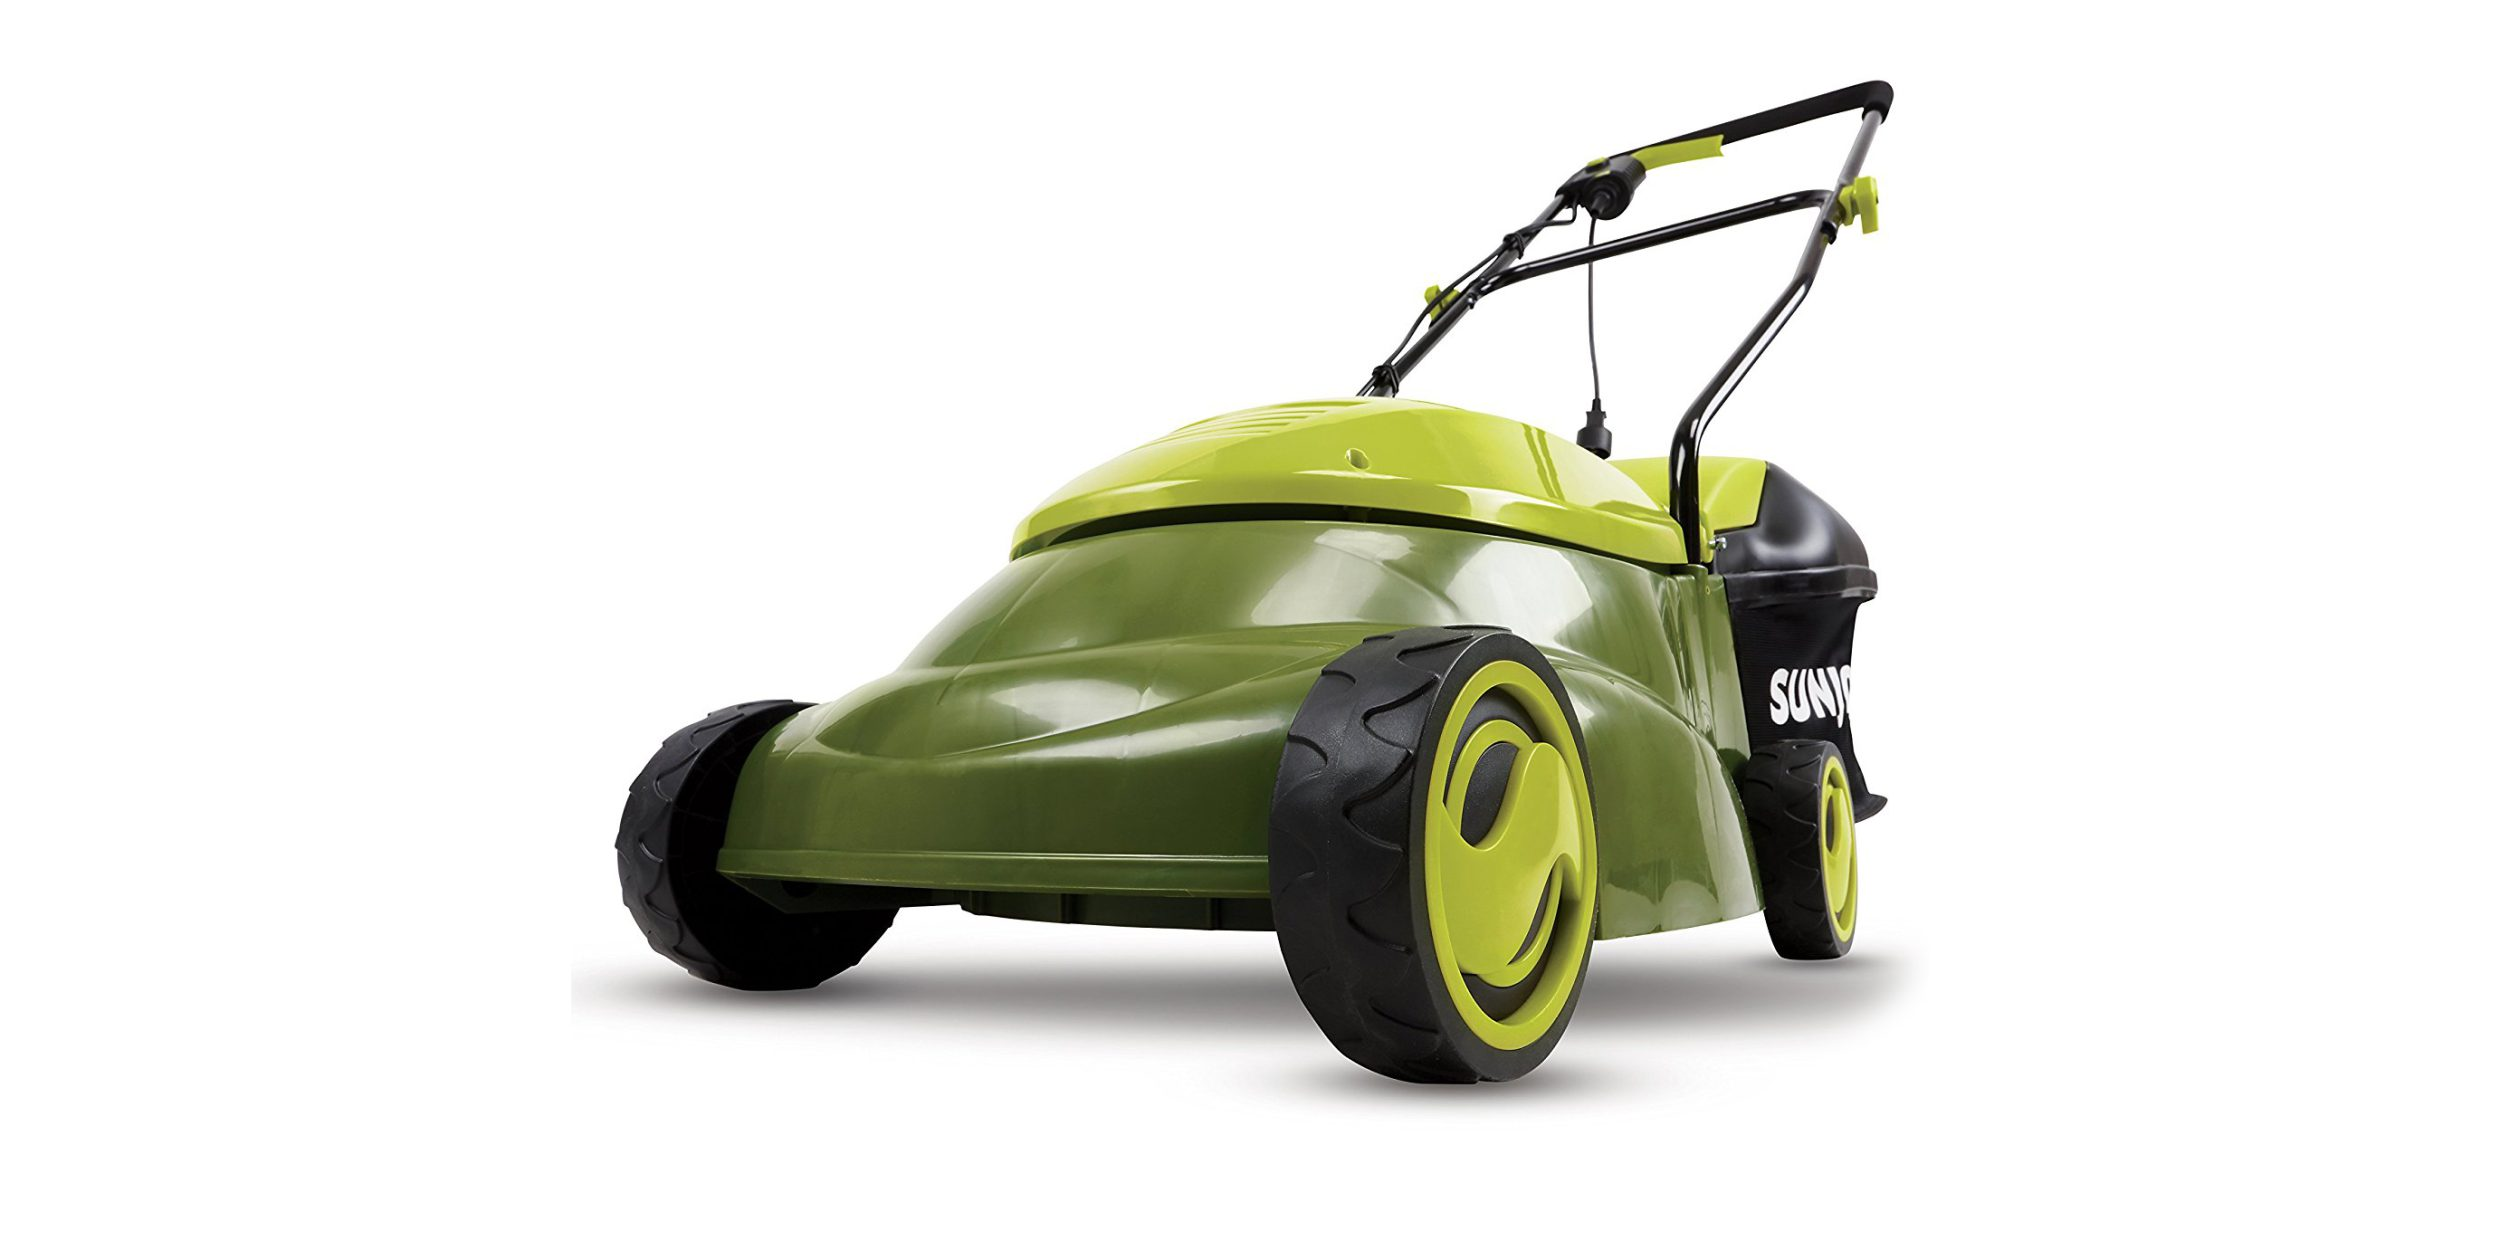 Green Deals: Sun Joe 14-inch 12A Electric Lawn Mower $69, more